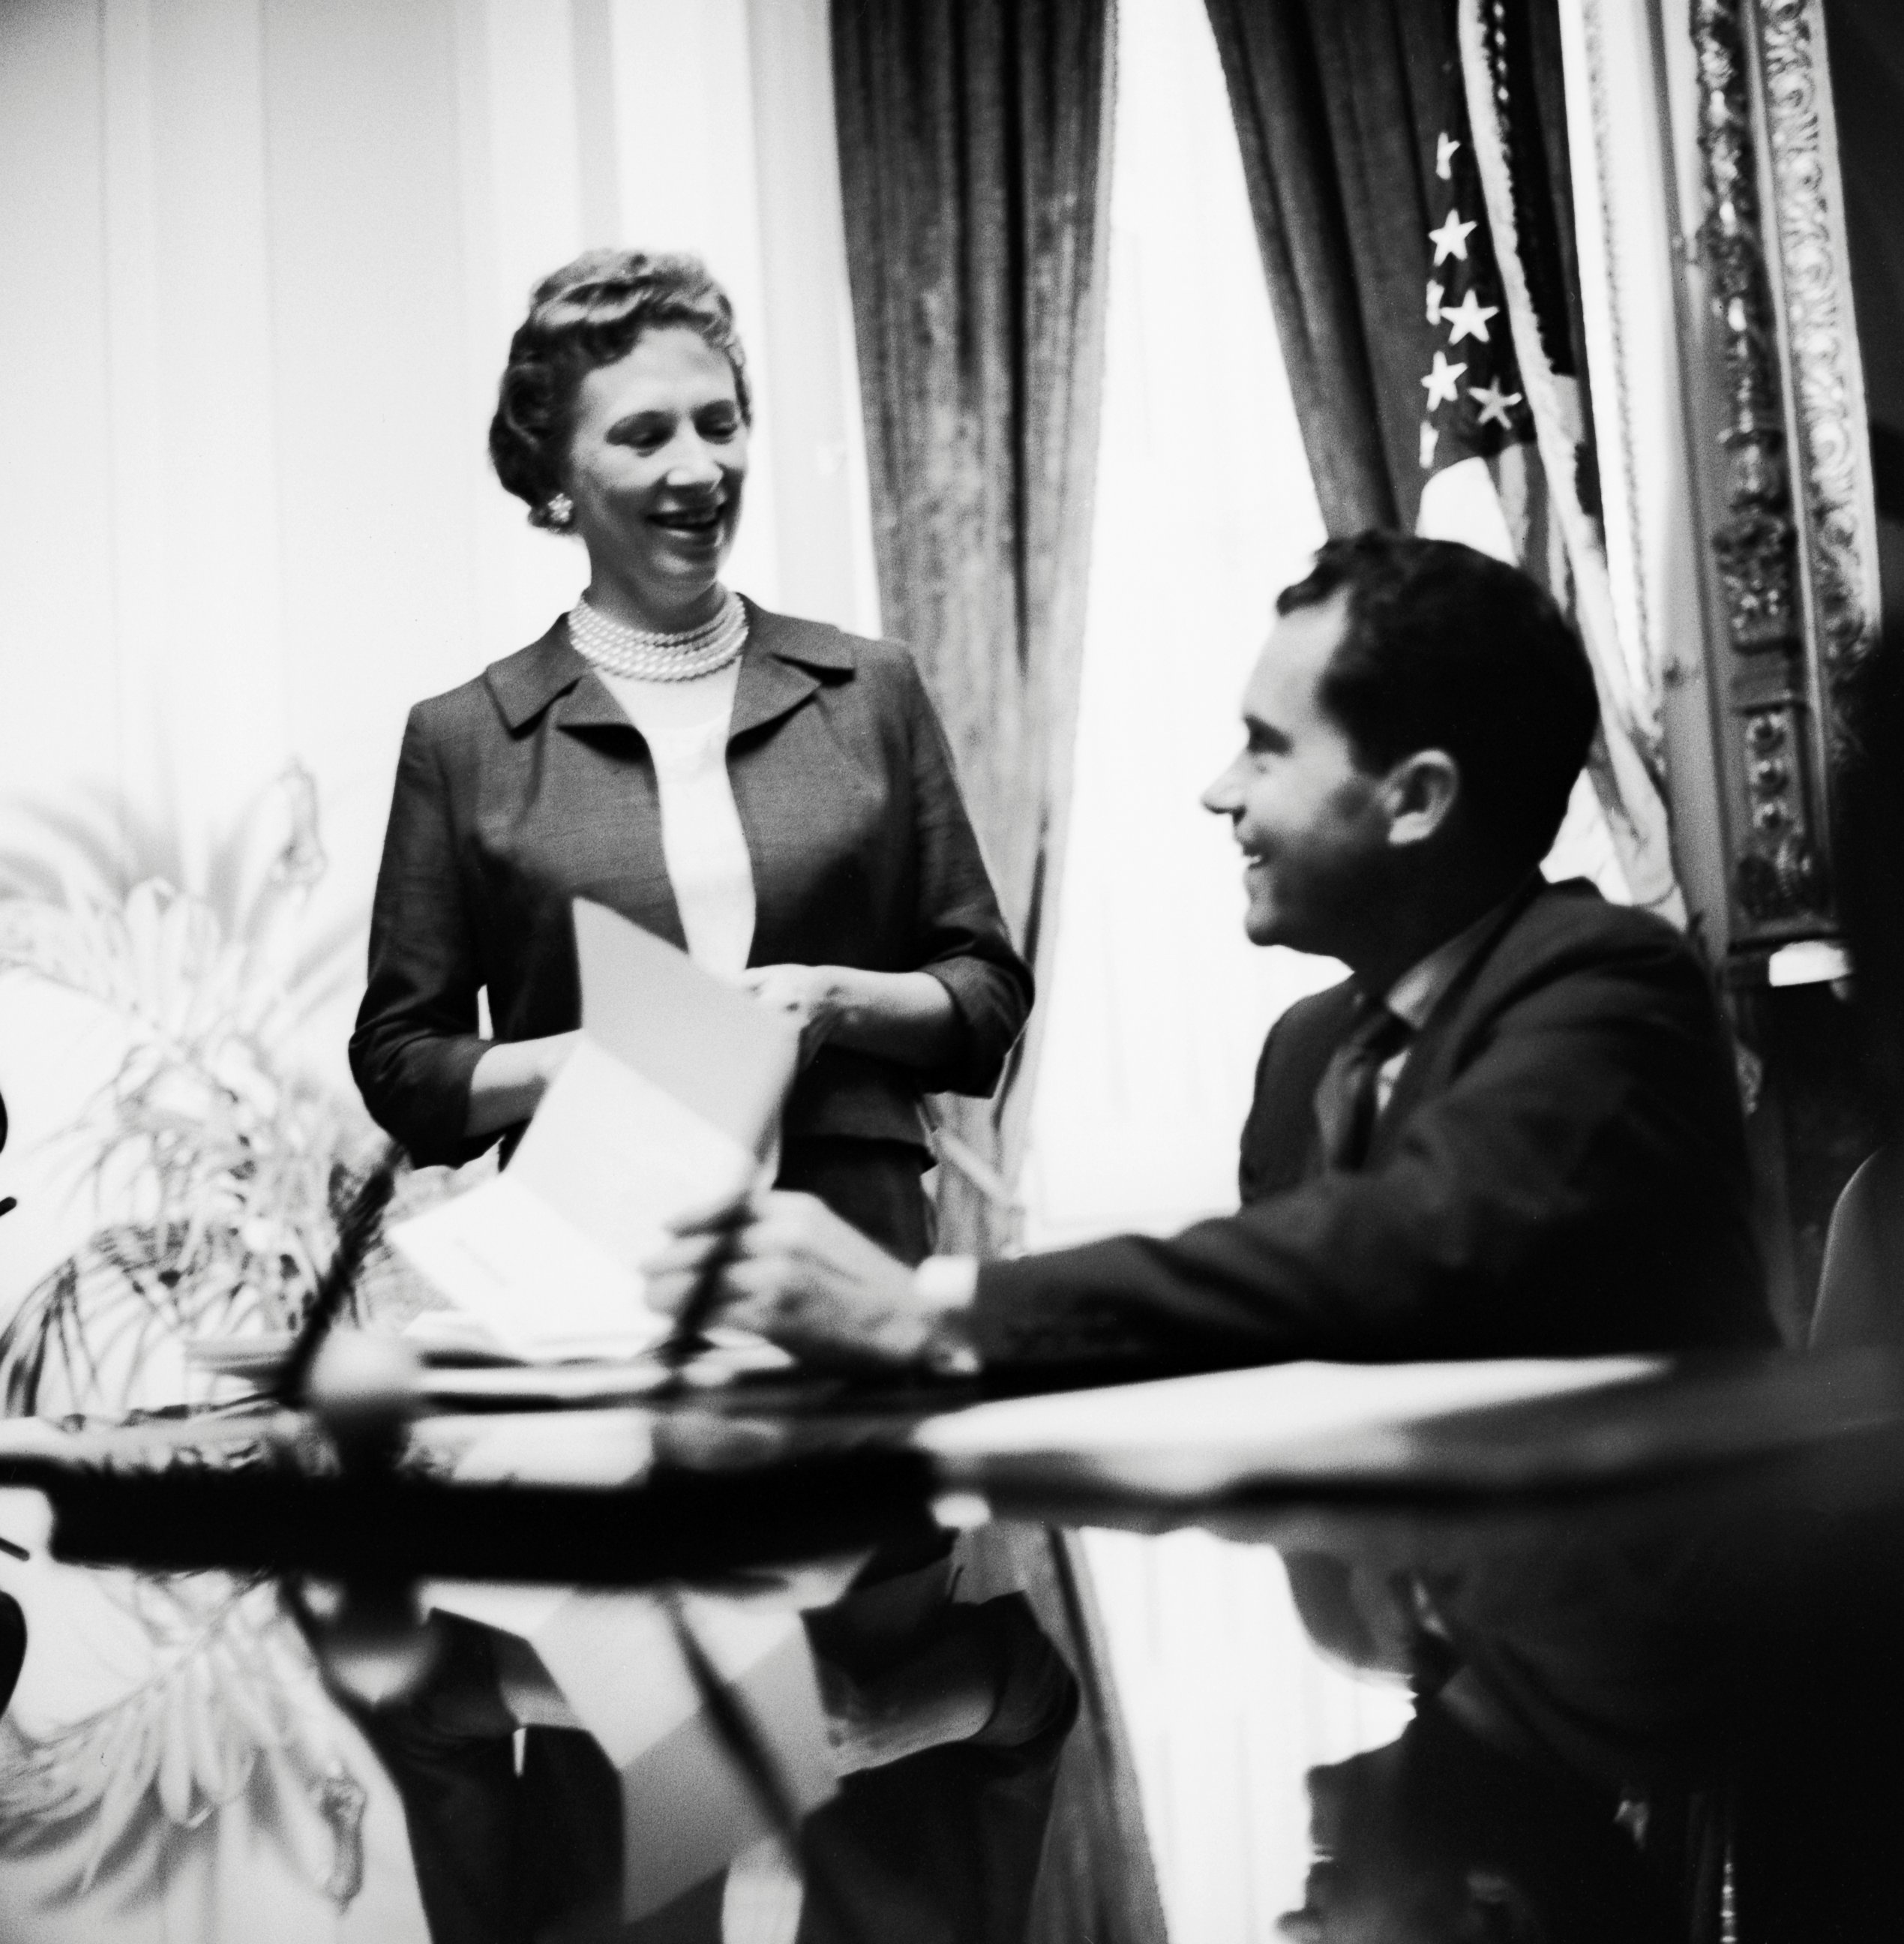 PHOTO: Rosemary Woods Talking to Richard Nixon in the Oval Office of the White House.